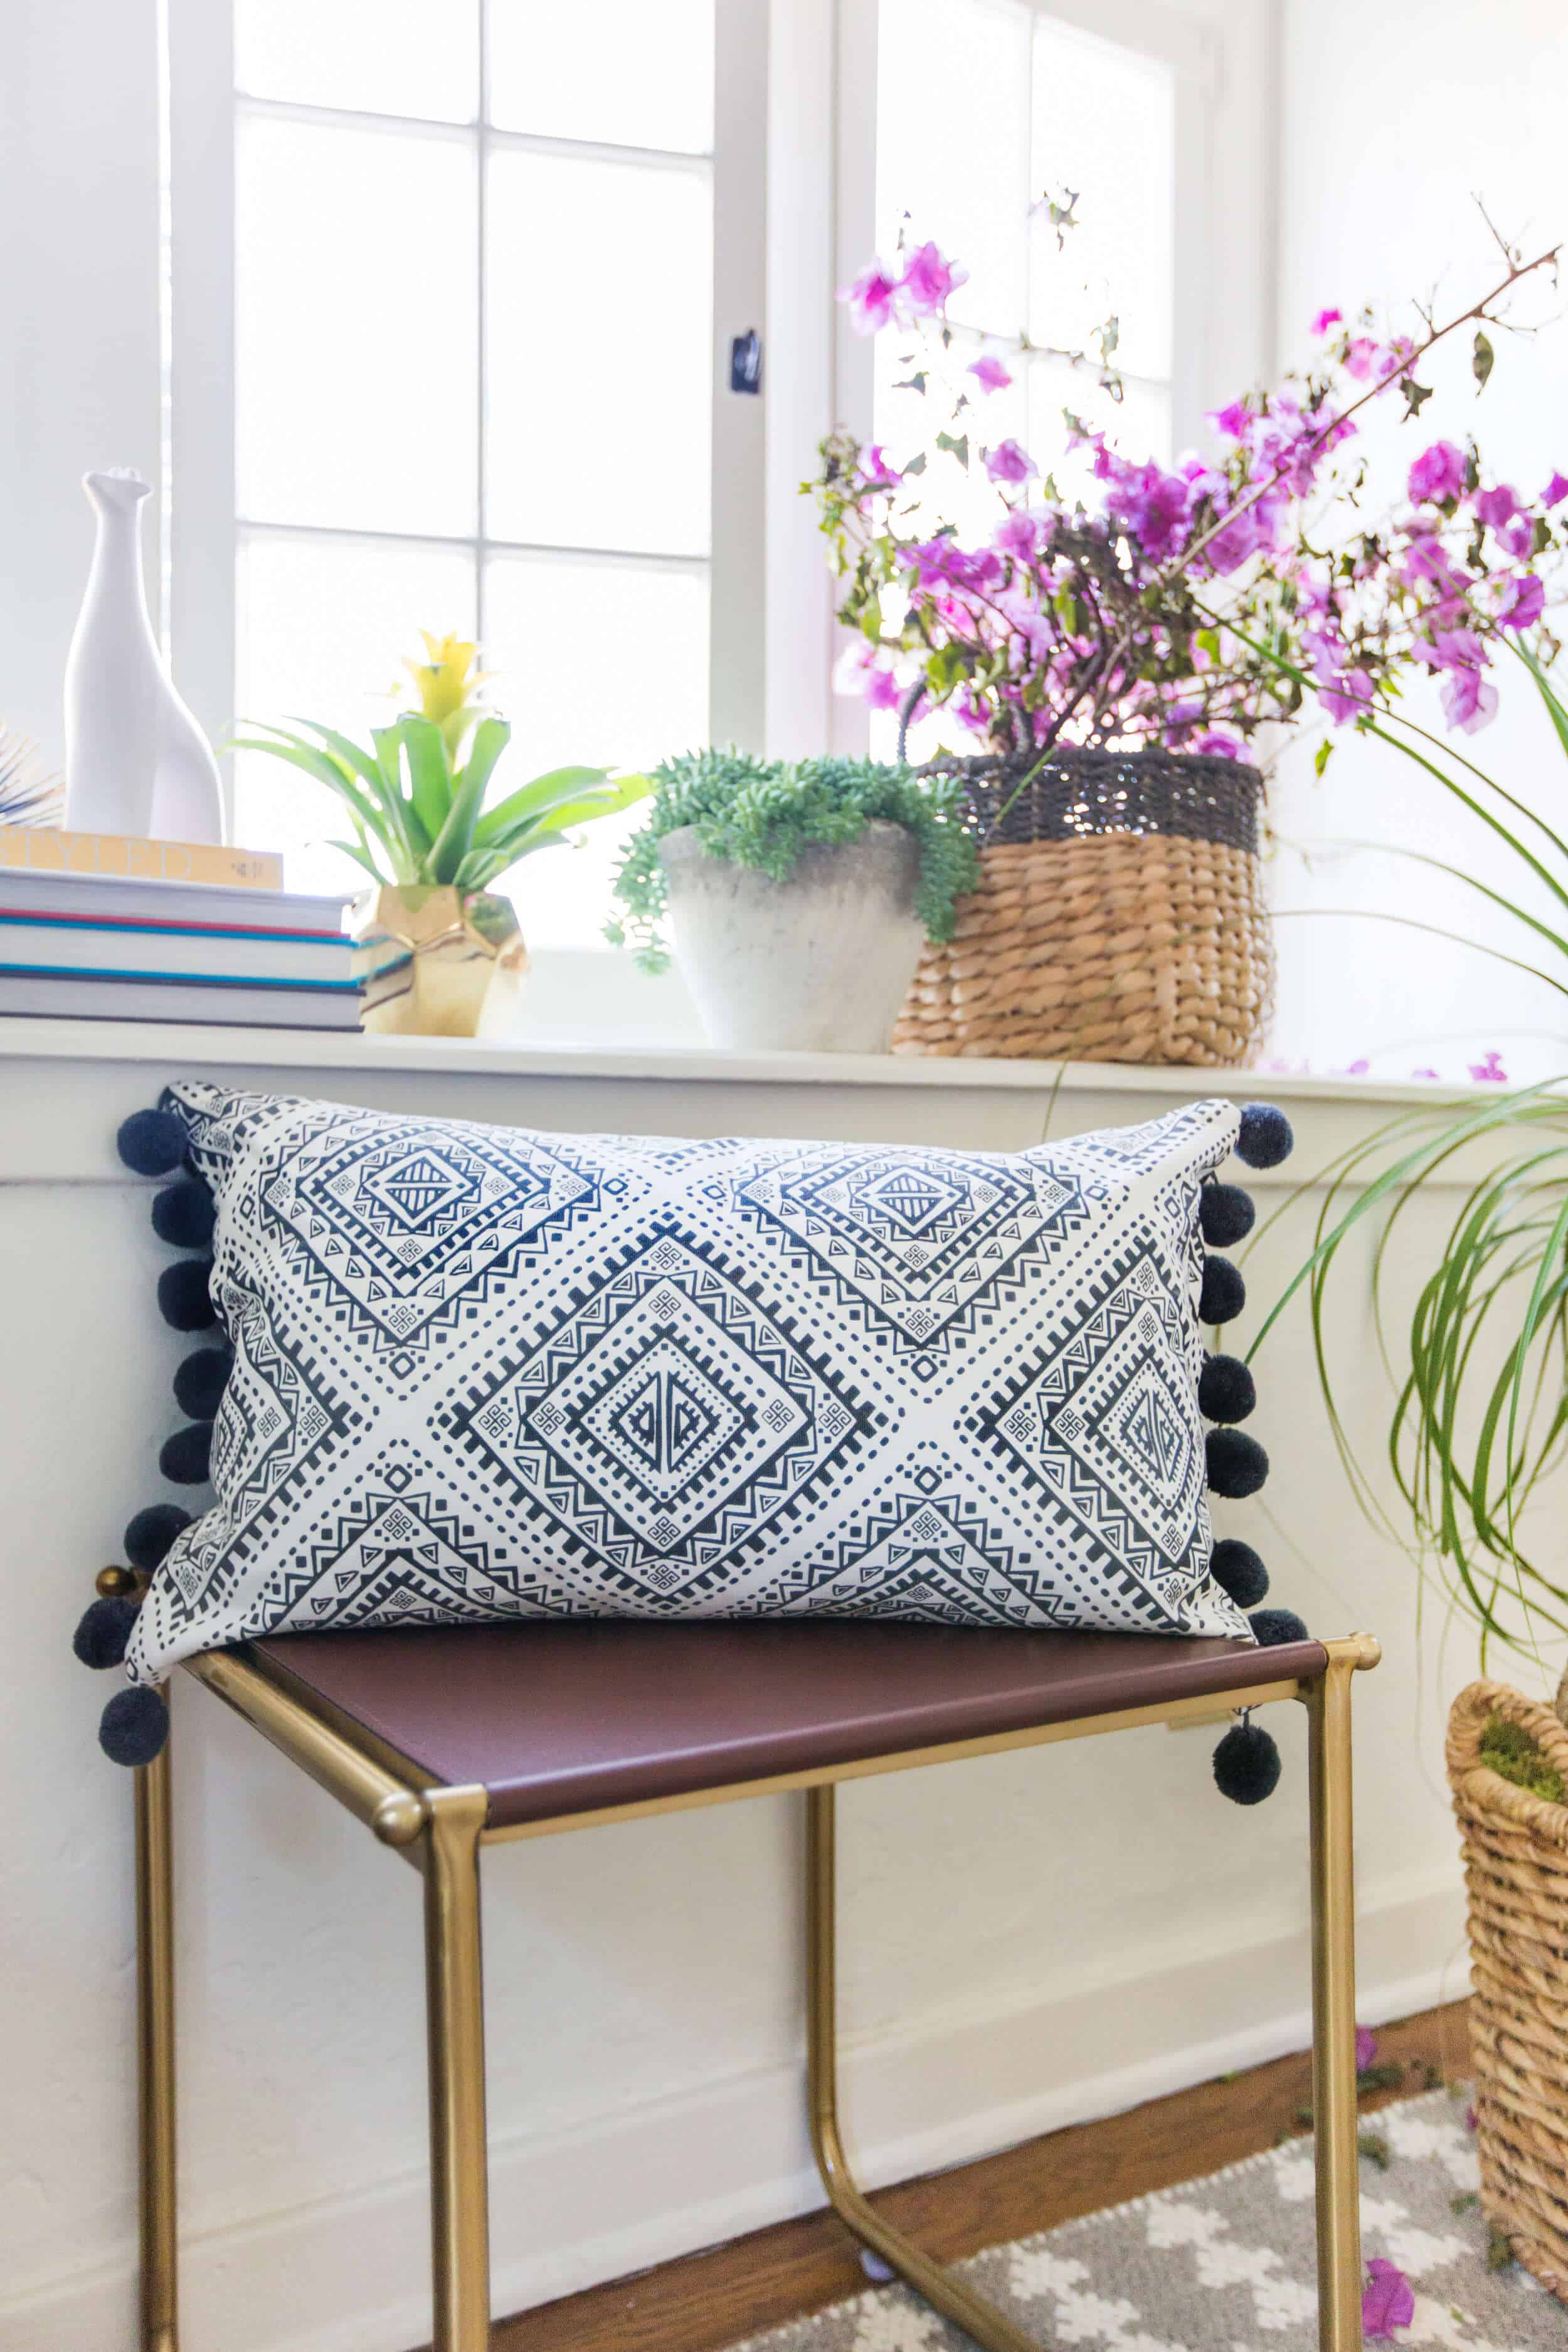 emily-henderson_target_find-your-style_vignette_boho_anthro_eclectic_collected_3